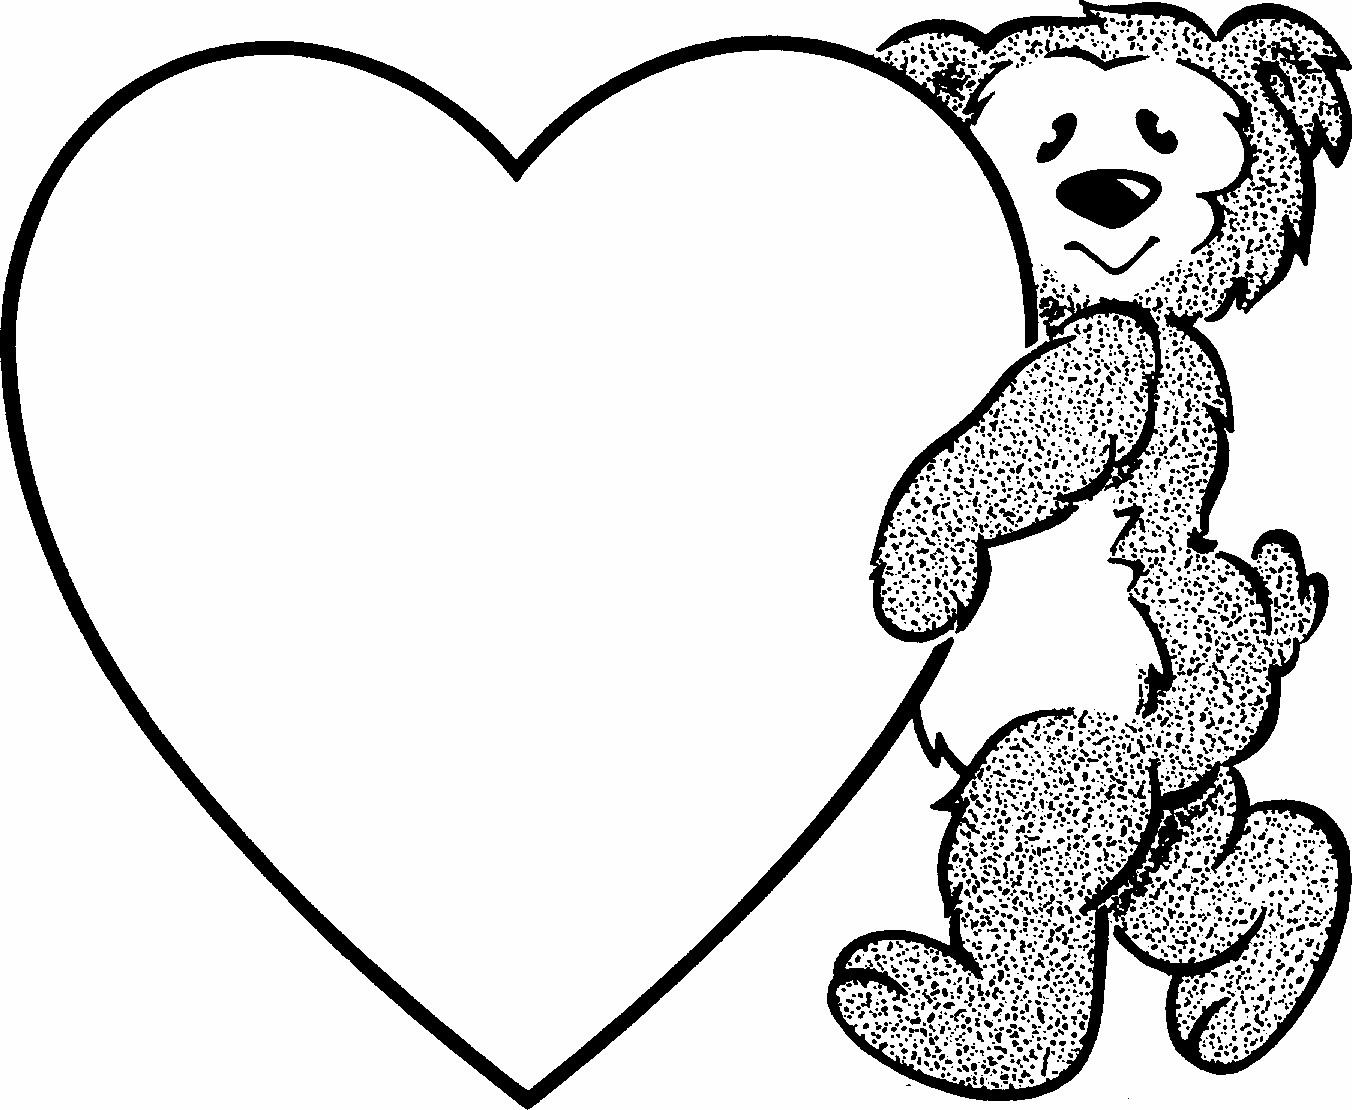 Adult Cute Heart With Wings Coloring Pages Gallery Images top hearts with wings coloring pages cliparts co heart page images pictures becuo gallery images